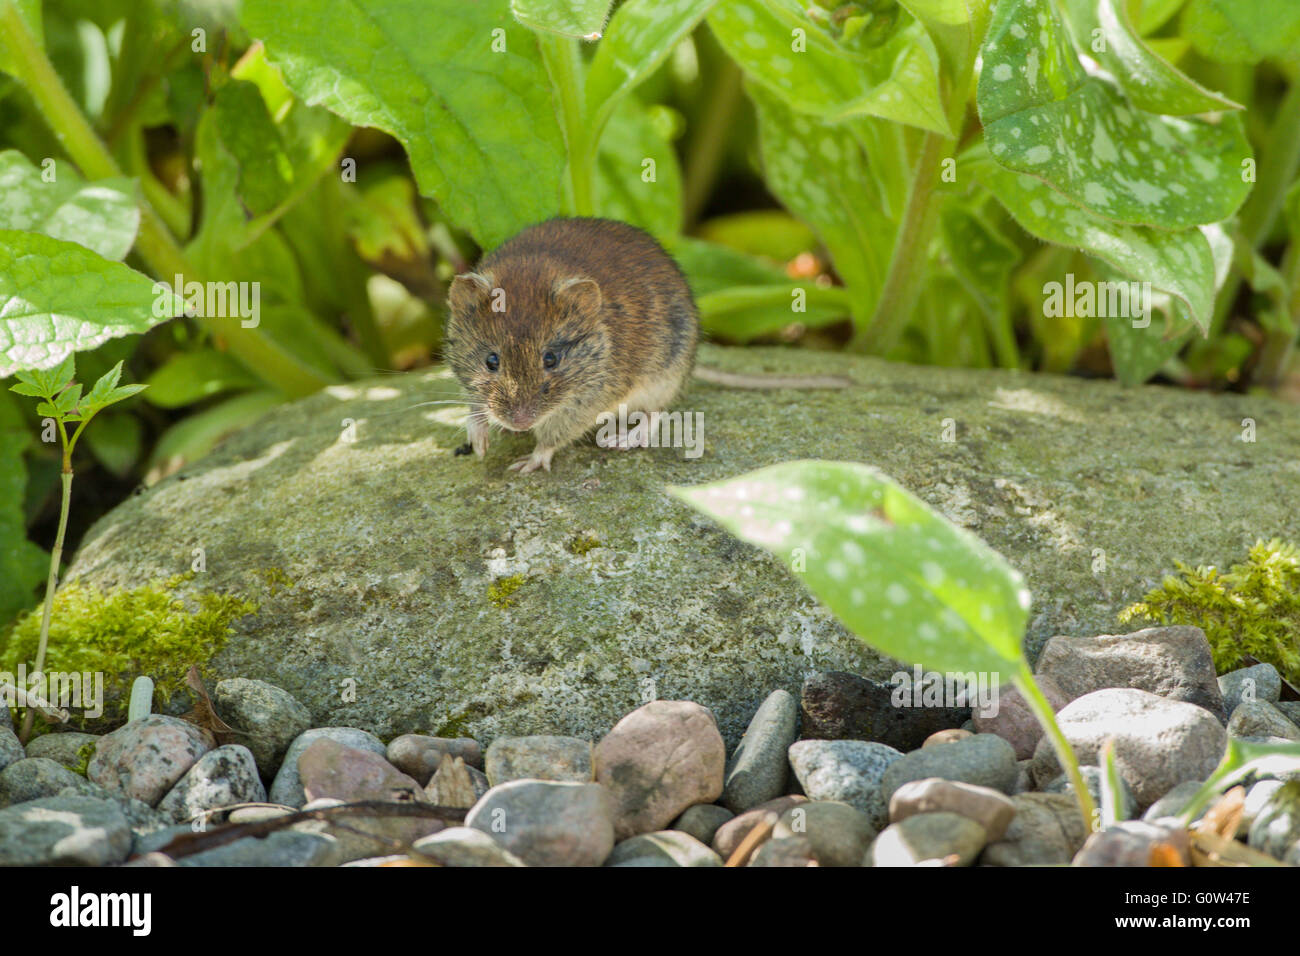 Bank Vole Clethrionomys glareolus standing on a rock sheltering under plants - Stock Image